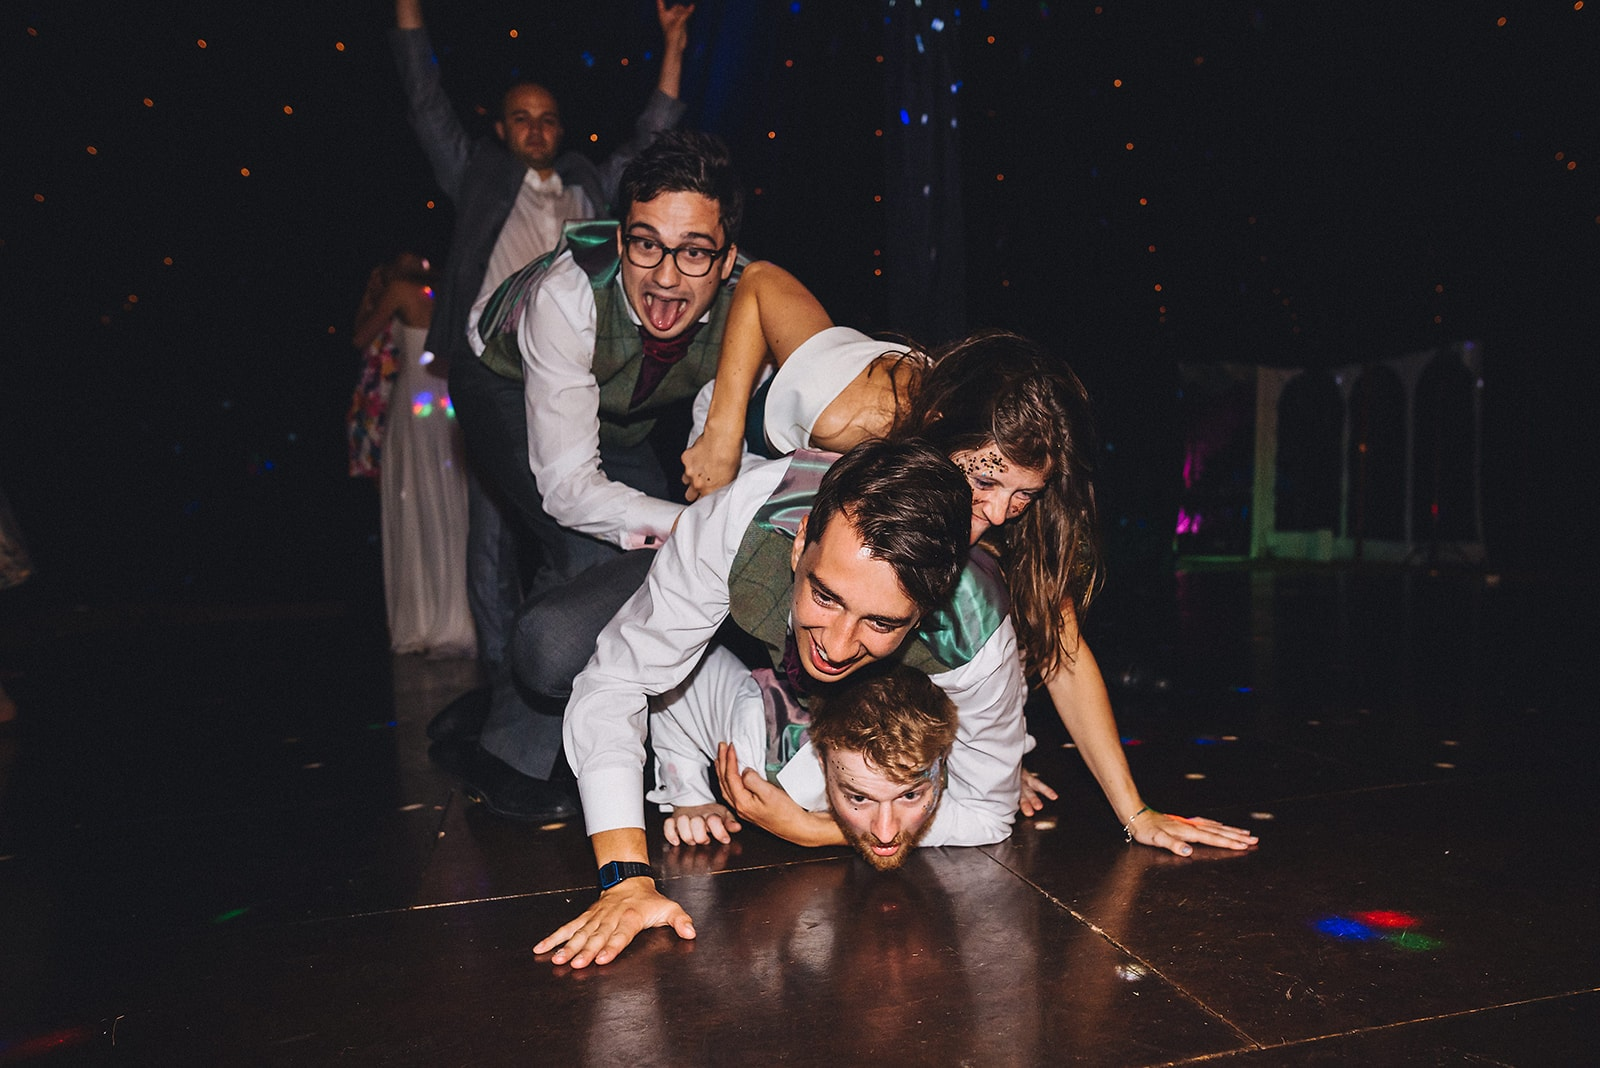 Wedding guests tumble to the floor during the wedding party